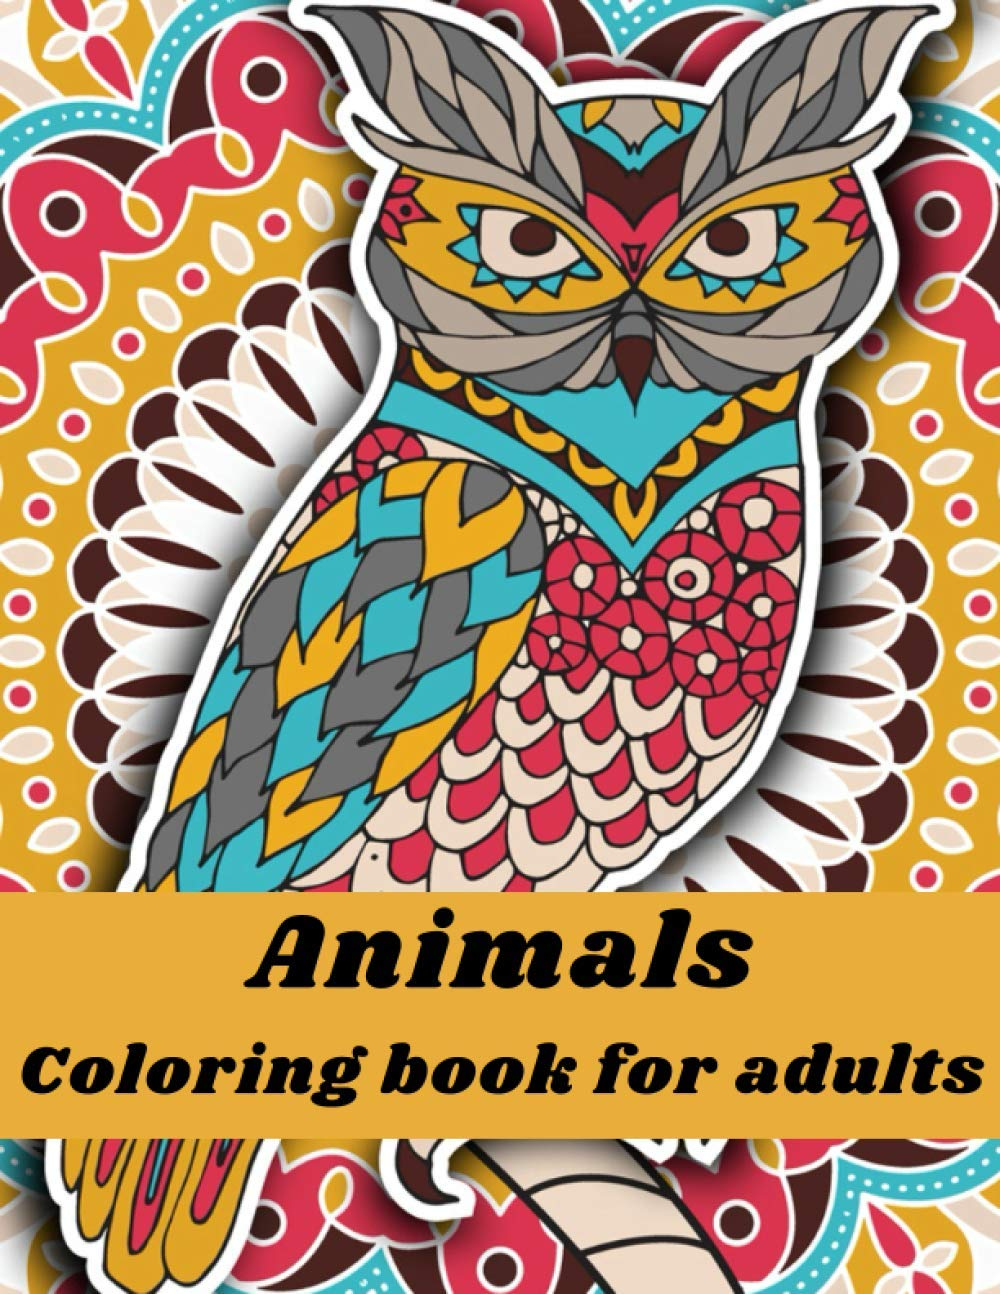 Animals Coloring Book for Adult: Inspirational Stress Relieving Designs Animals, Mandalas, Flowers, Paisley Patterns, Destress and Good Vibes Book